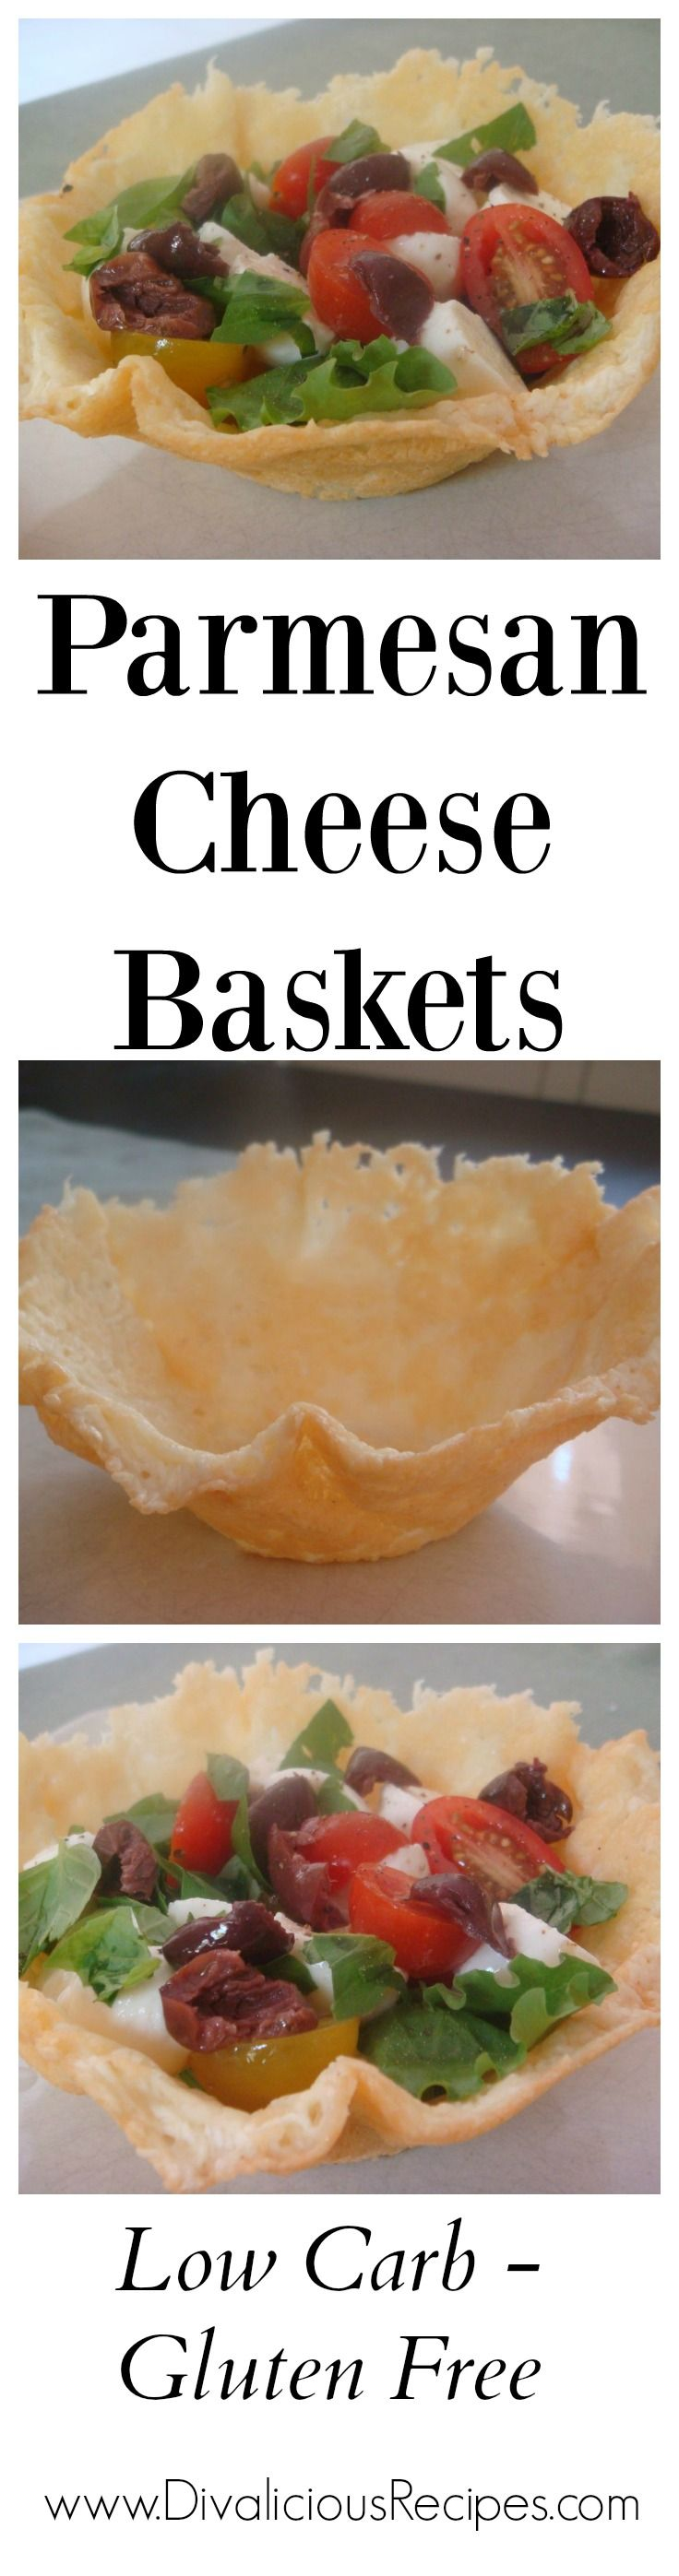 Parmesan cheese baskets to serve salad or chilli in! Low carb & gluten fee.